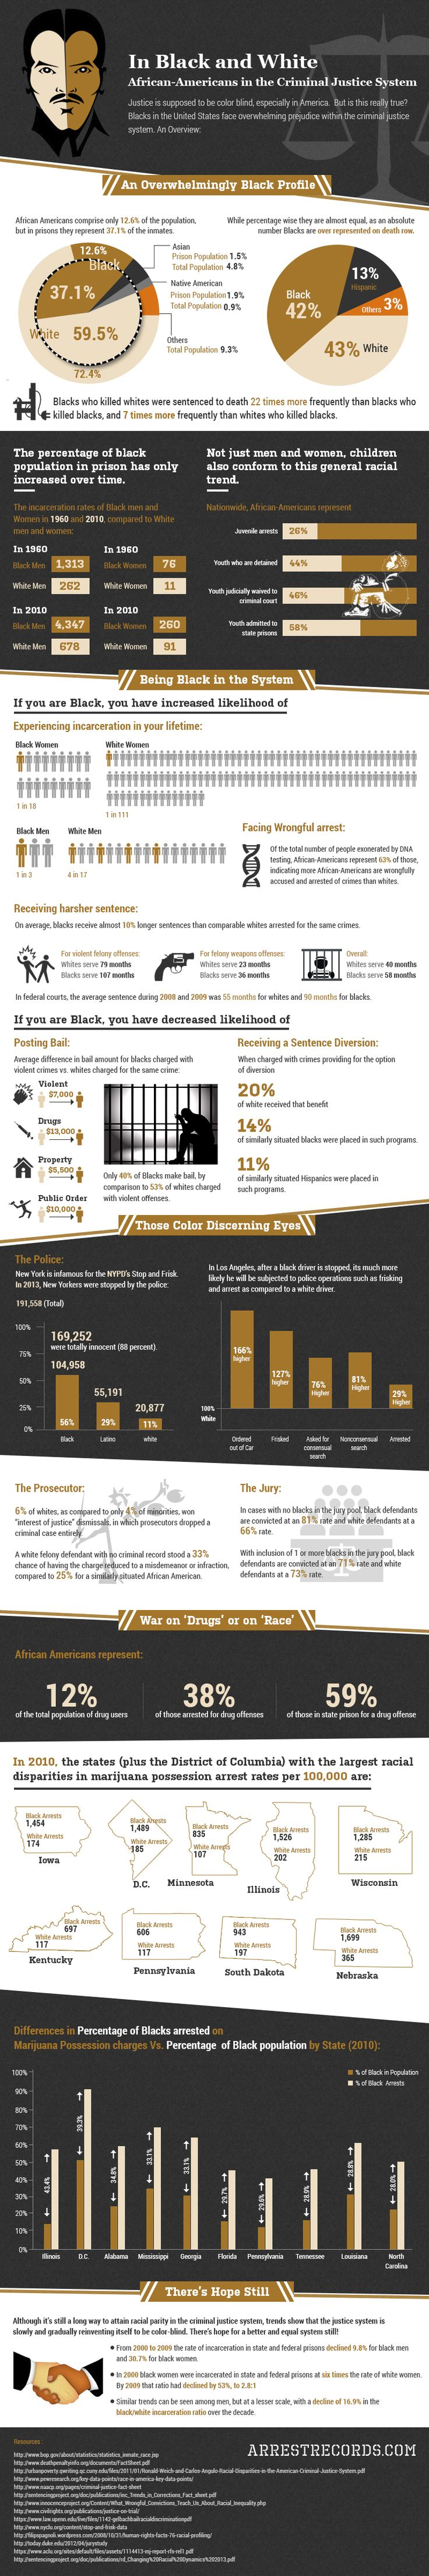 """INFO-GRAPHICS: Militarization of the U.S. Police Forces + Racism in the Criminal """"Justice"""" System « United States Hypocrisy"""